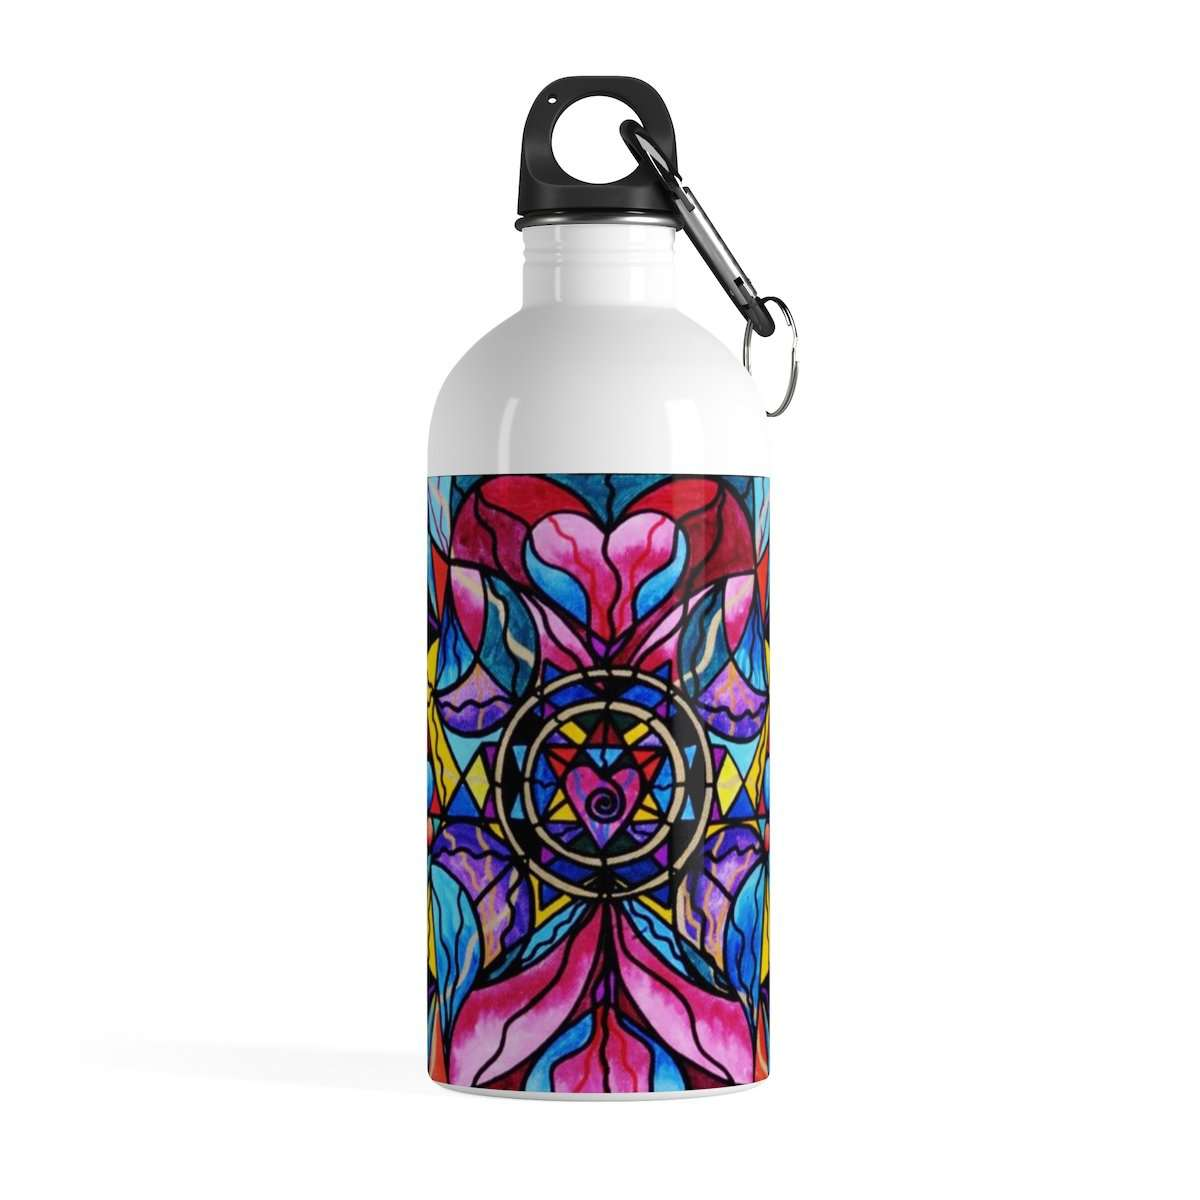 Blue Ray Self Love Grid - Stainless Steel Water Bottle